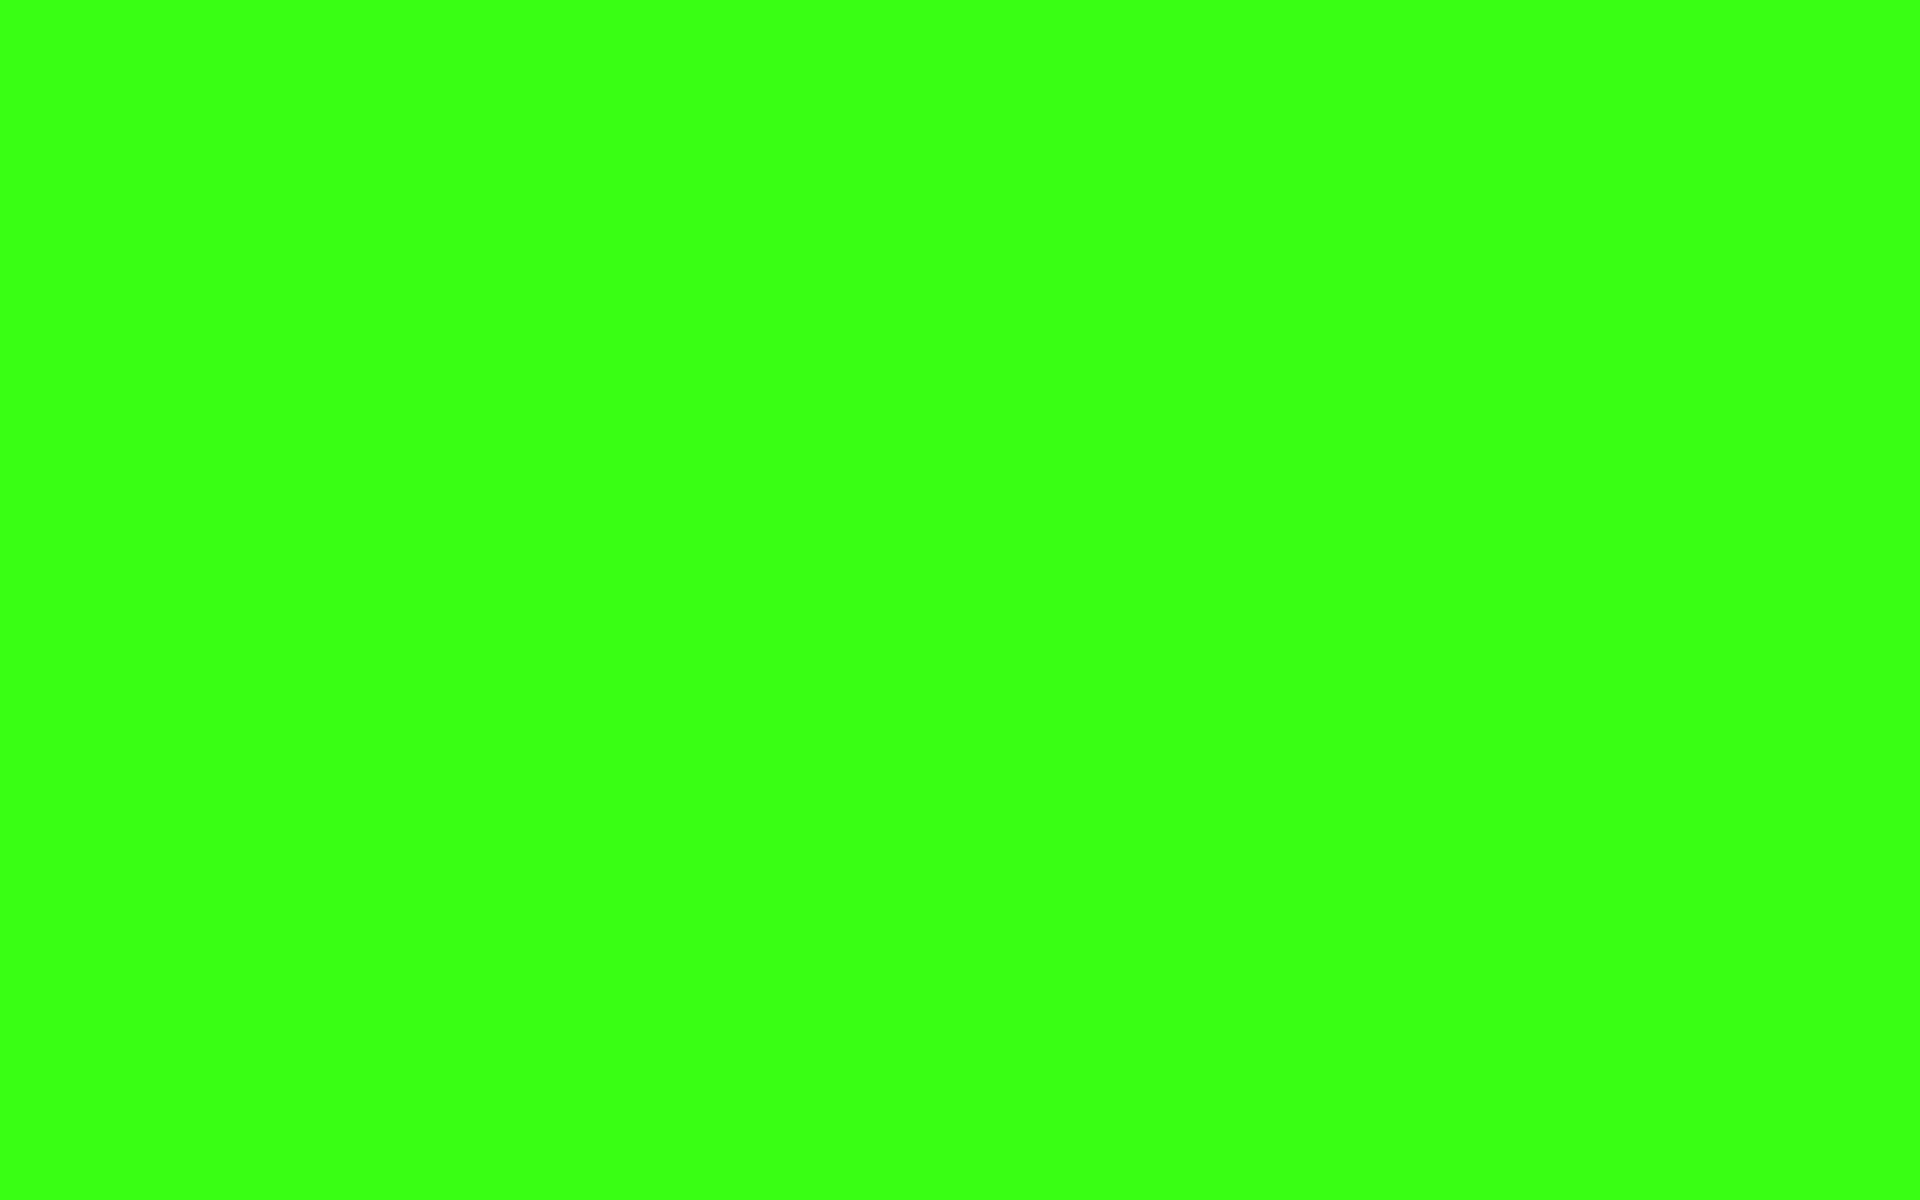 solid bright green background - photo #49